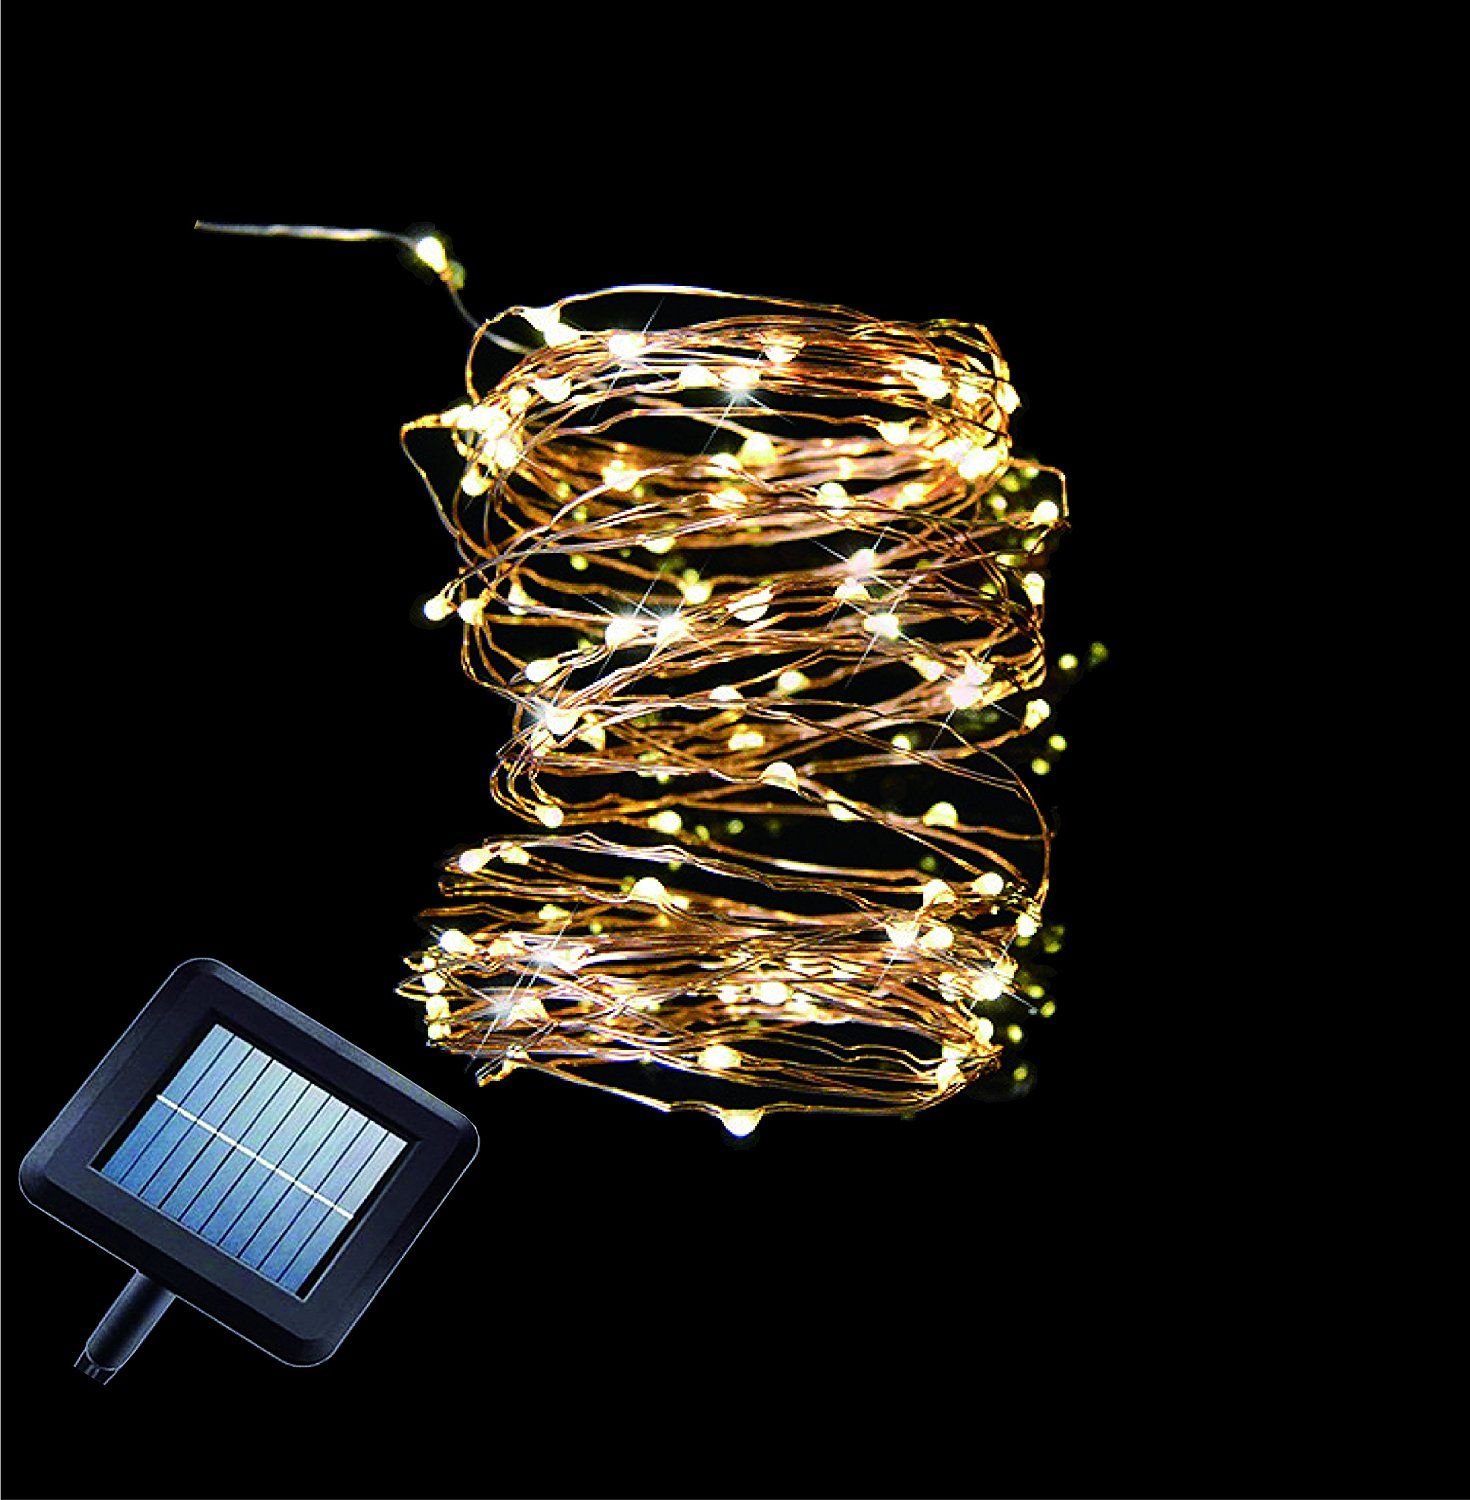 Starry String Lights Outdoor : Solar lights outdoor String Lights - Led Christmas Lights, 33 ft Copper Wire, 100 LEDs solar ...